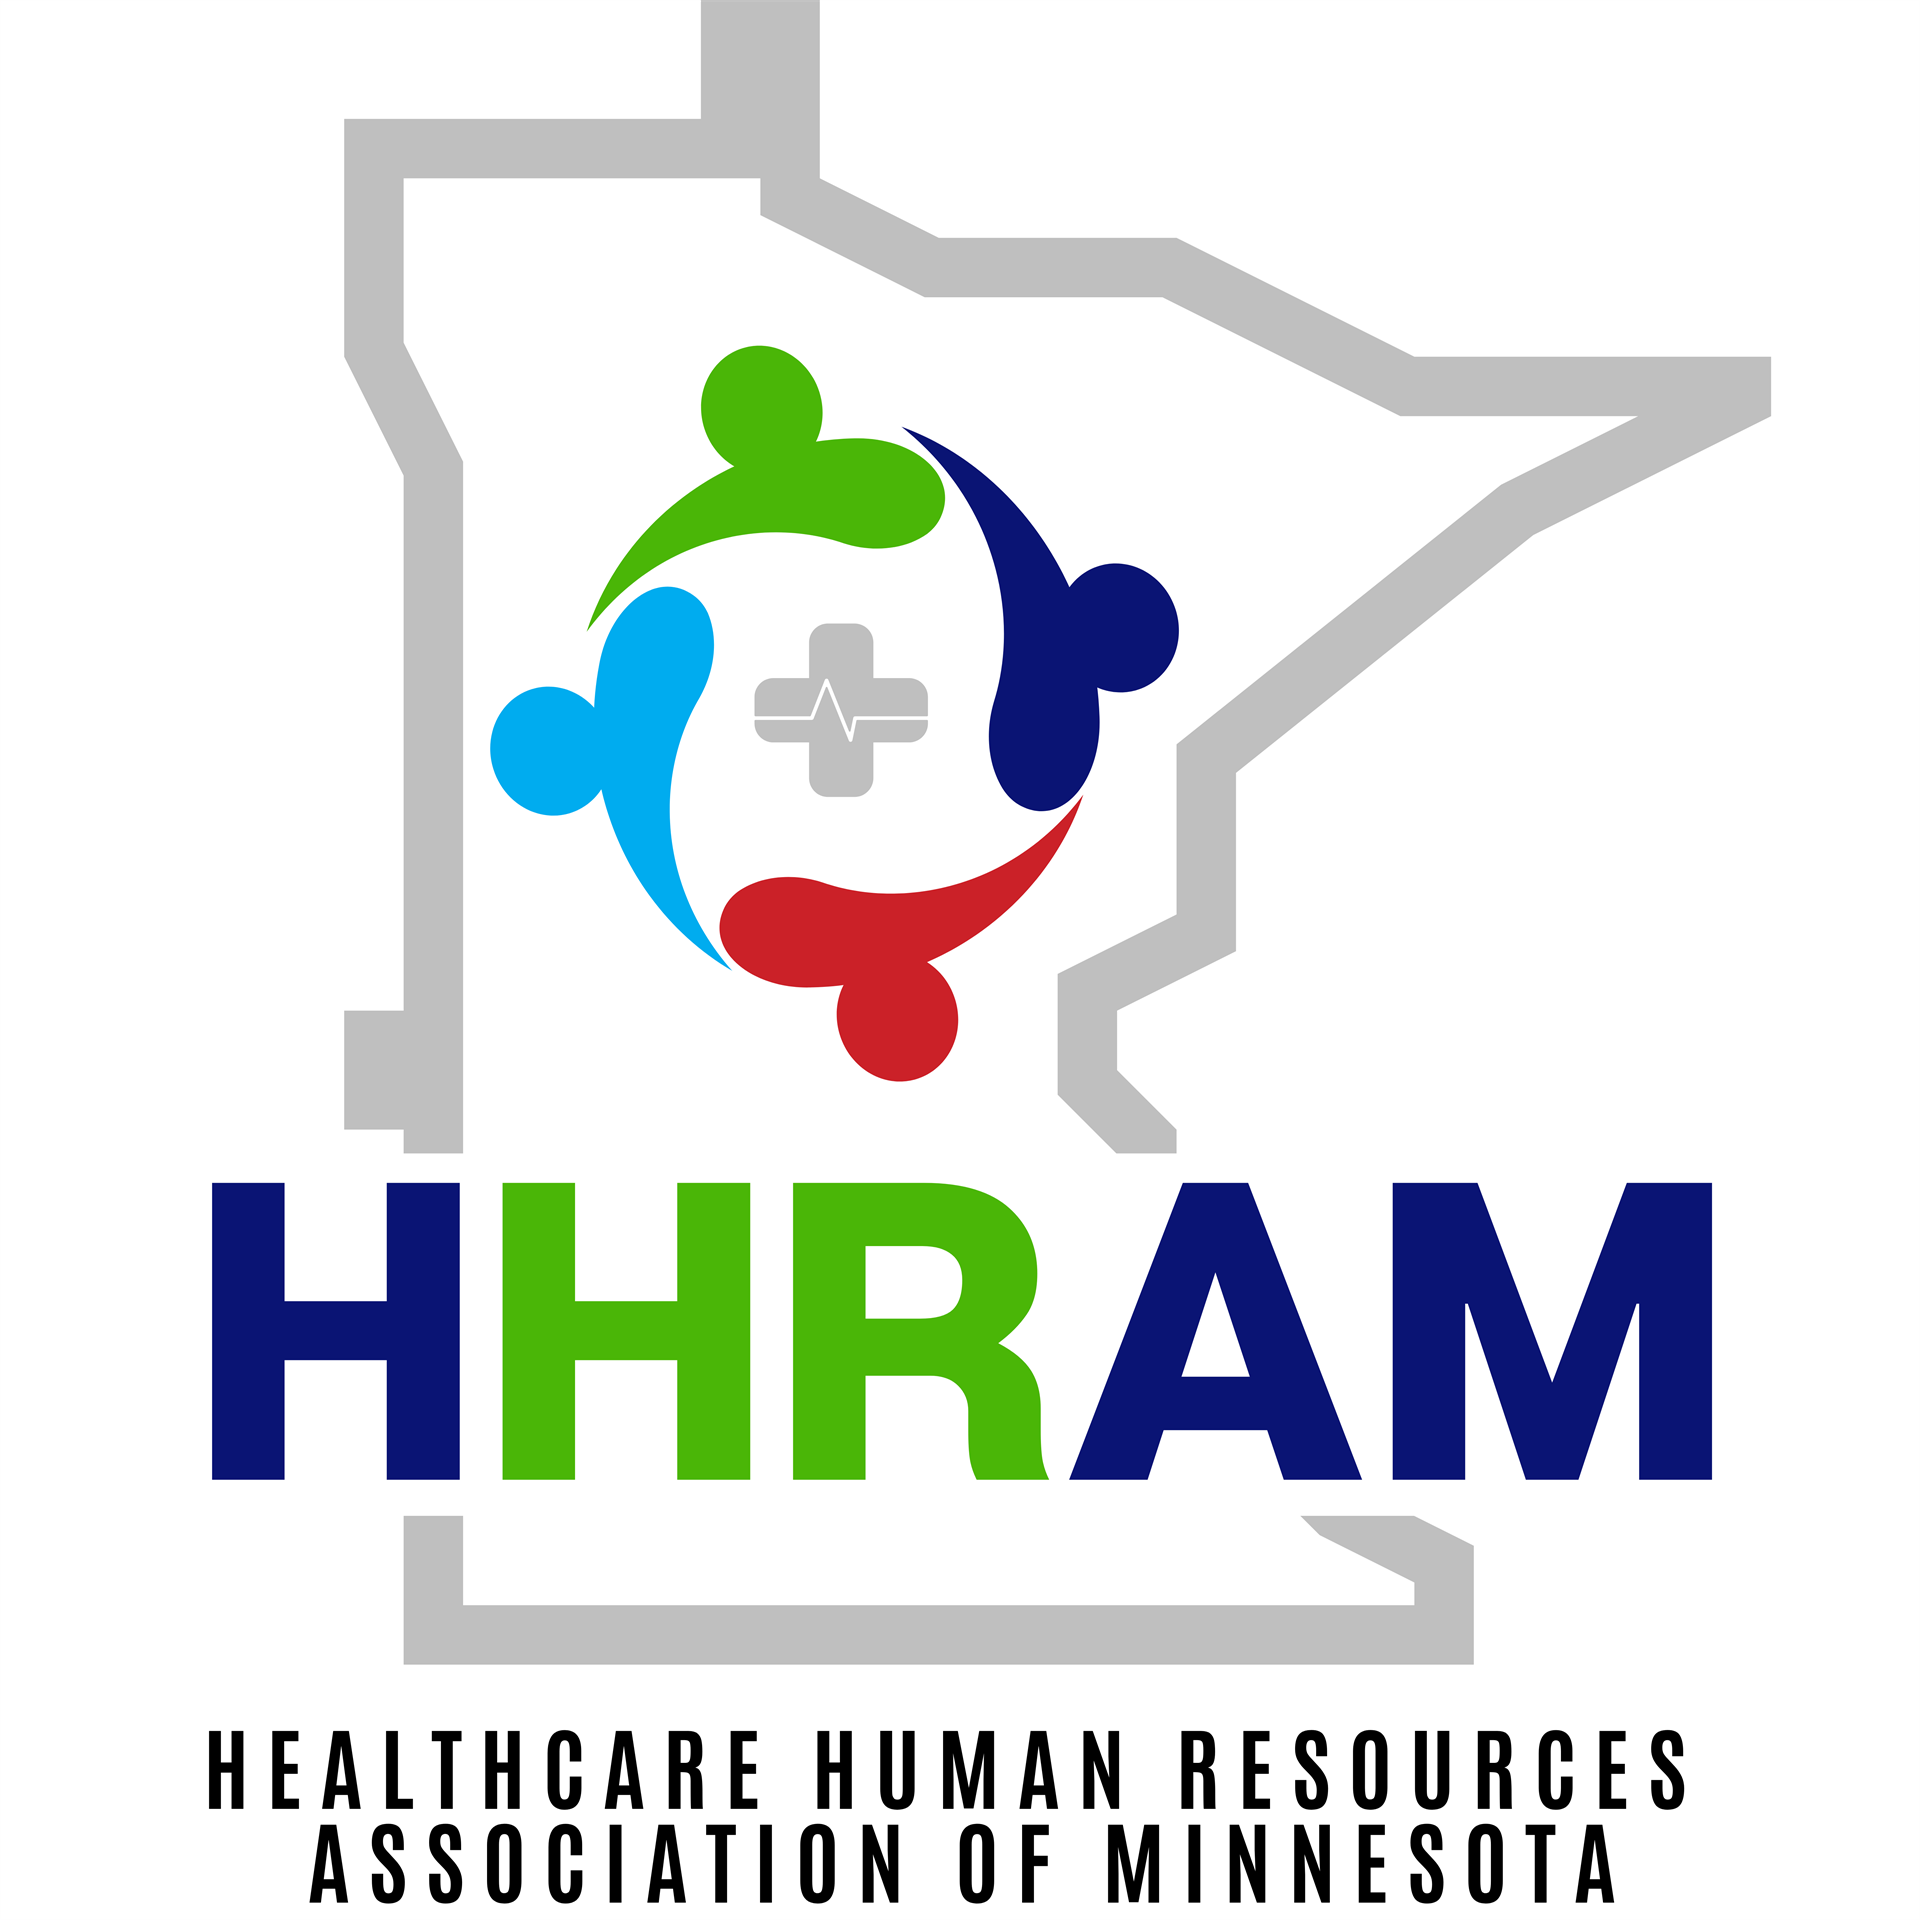 Healthcare and Human Resources Association of Minnesota